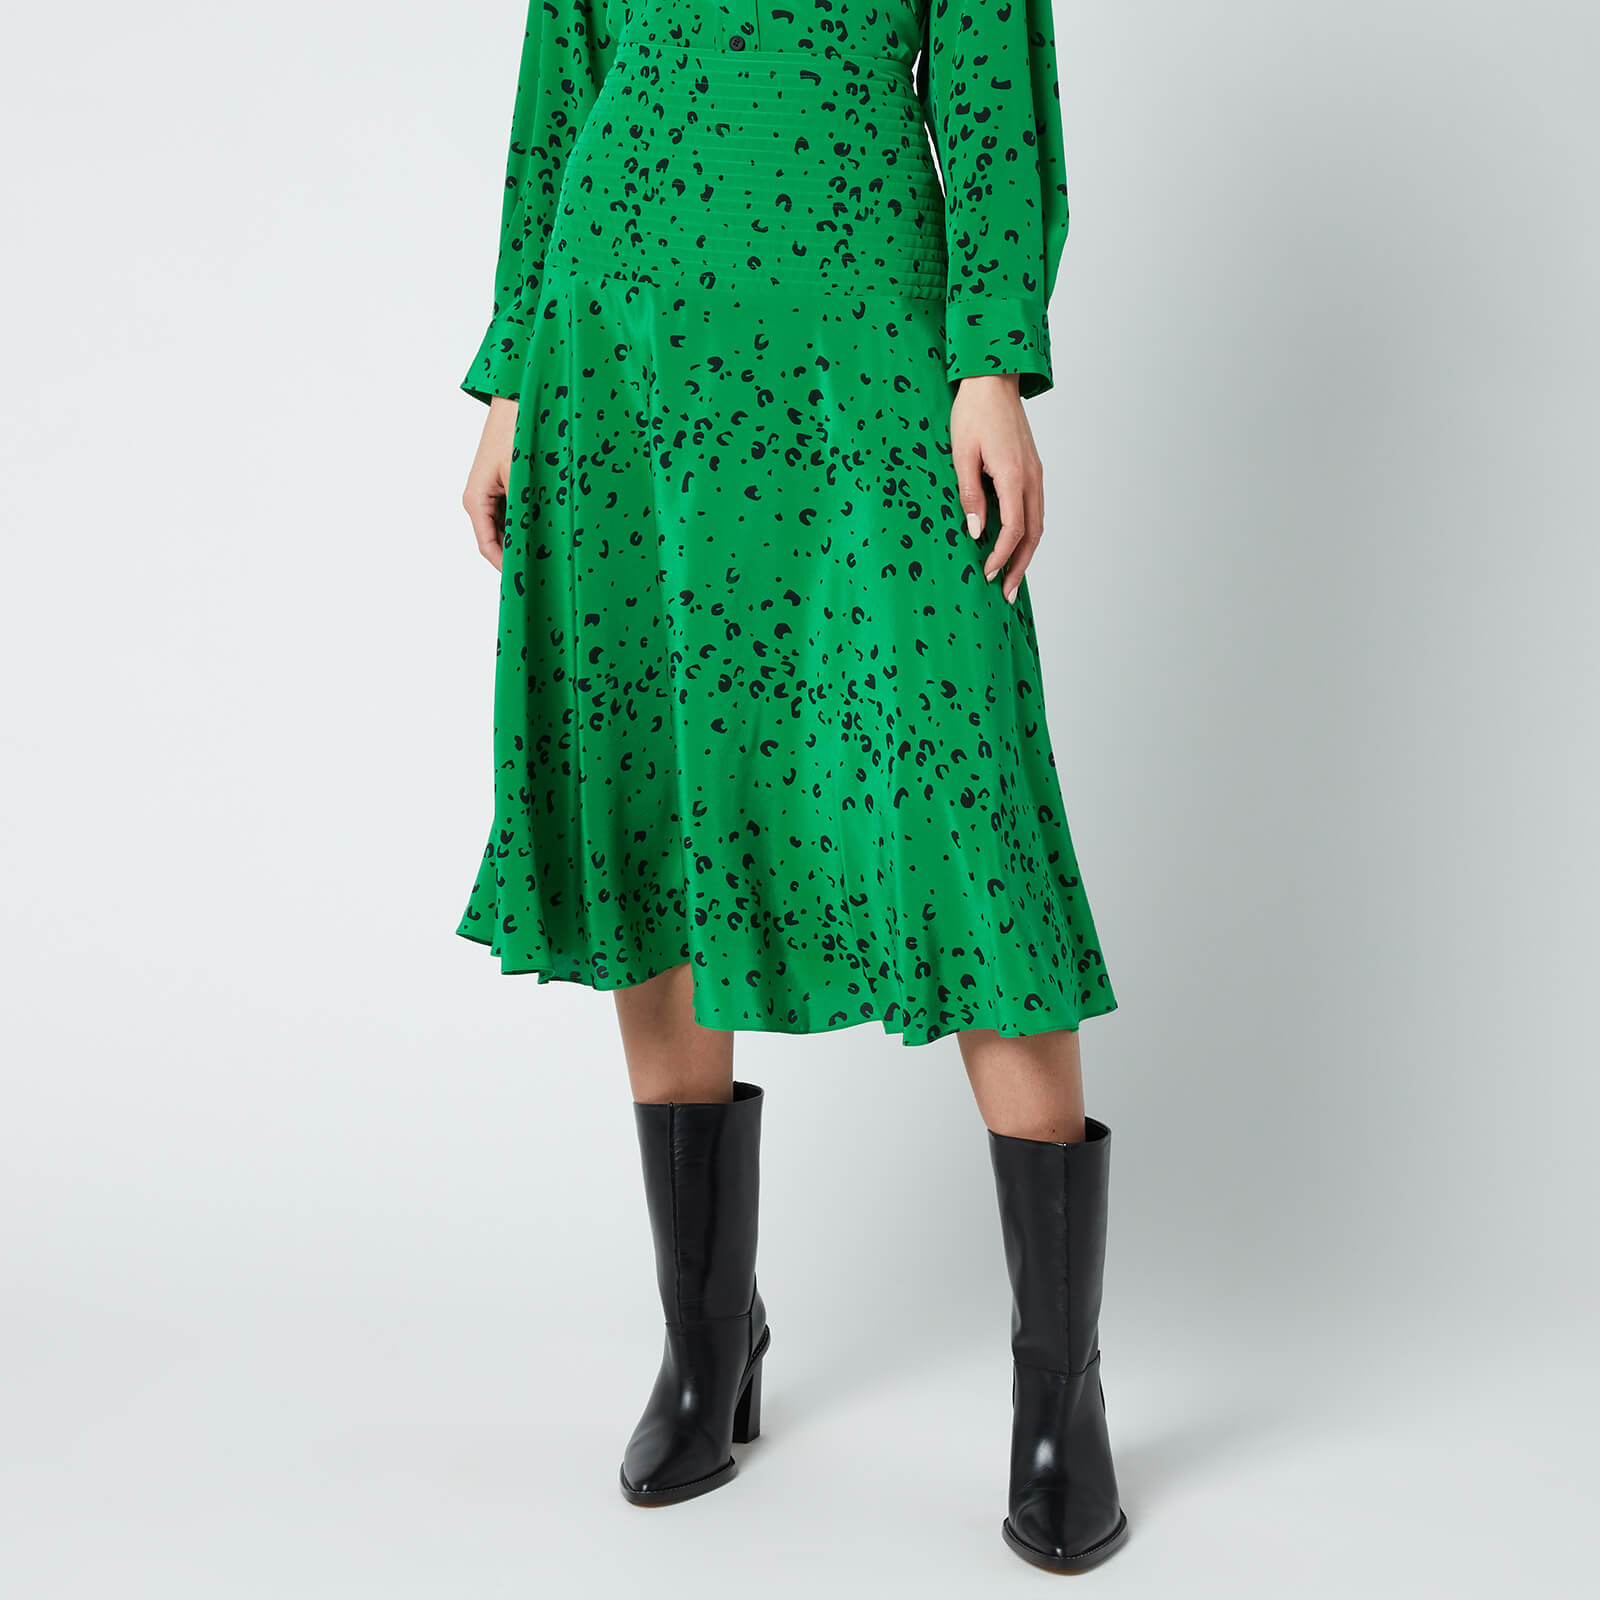 KENZO Women's Printed Midi Fluid Skirt - Green - EU 40/UK 10 from Kenzo